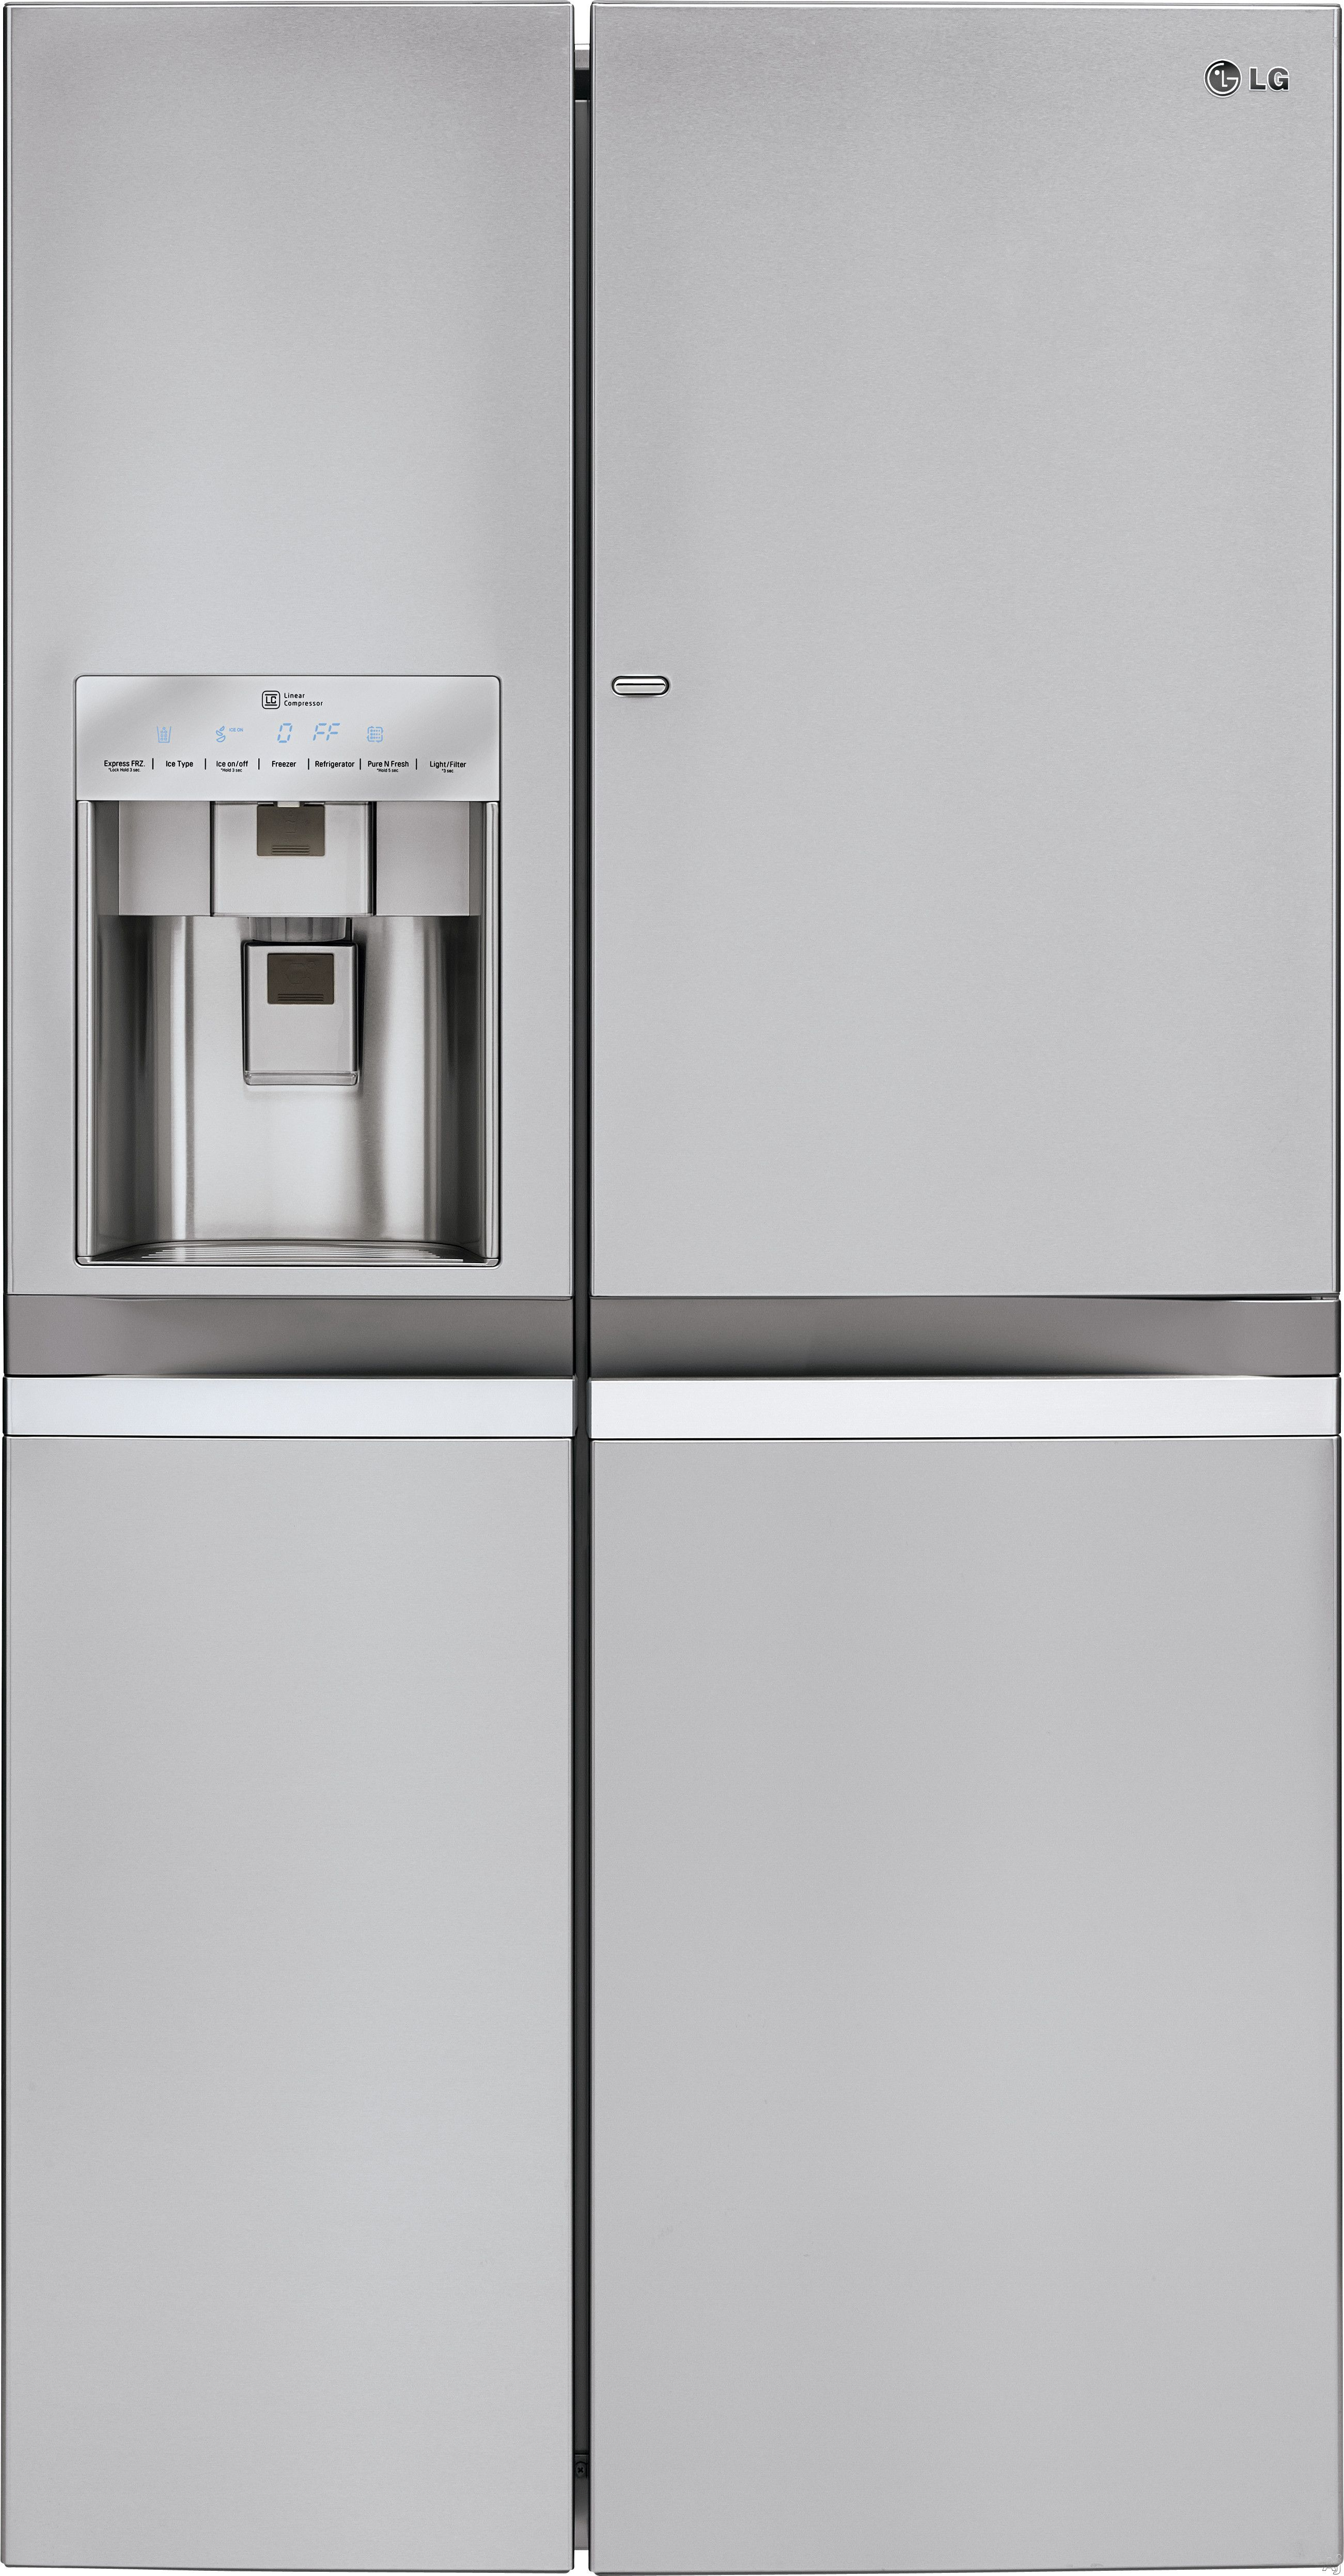 Lg French Door Four Door Refrigerator With Water And Ice Dispenser